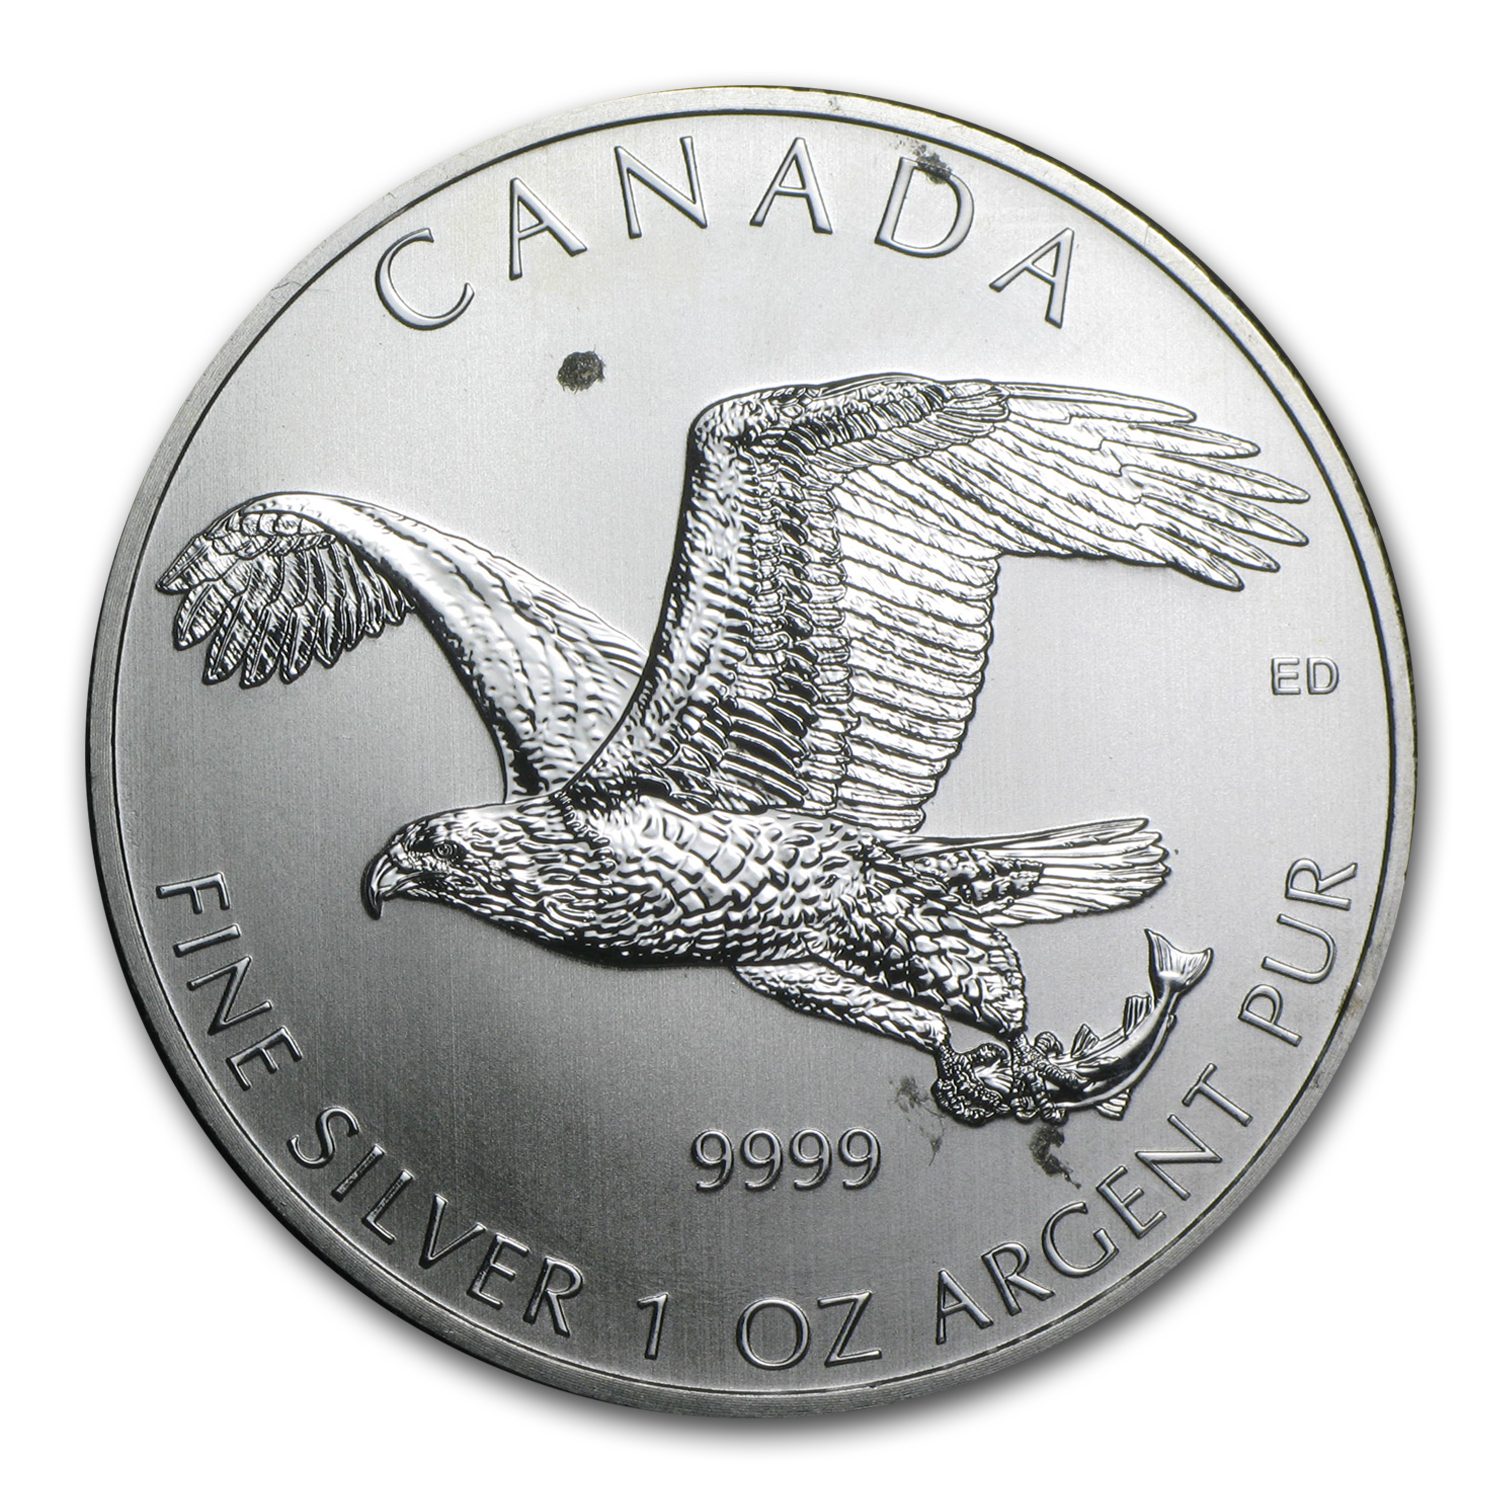 2014 1 oz Silver Bird of Prey Bald Eagle (Abrasions, Spots)